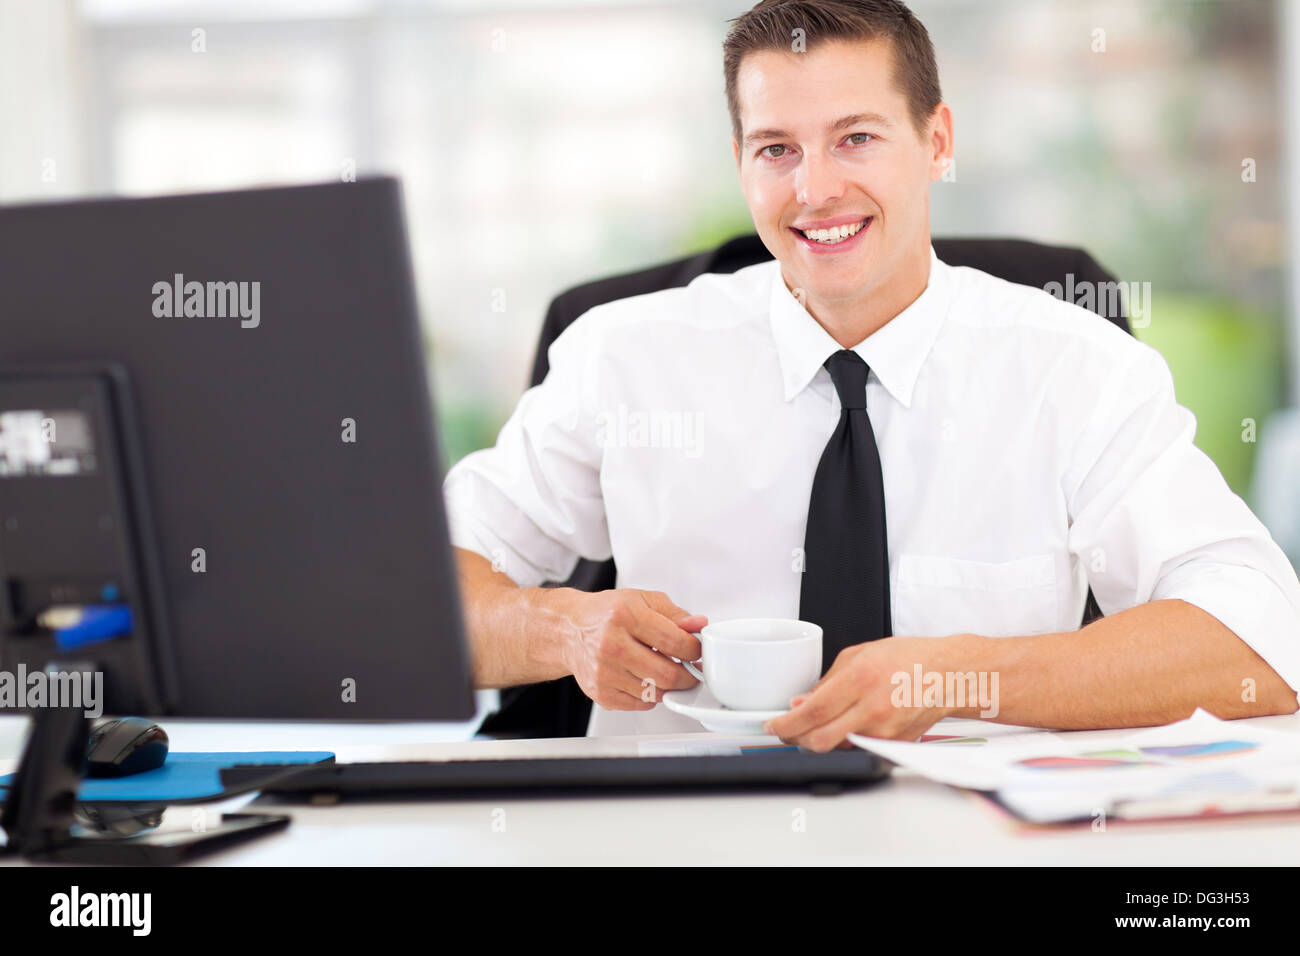 happy young office worker drinking coffee Stock Photo - Alamy